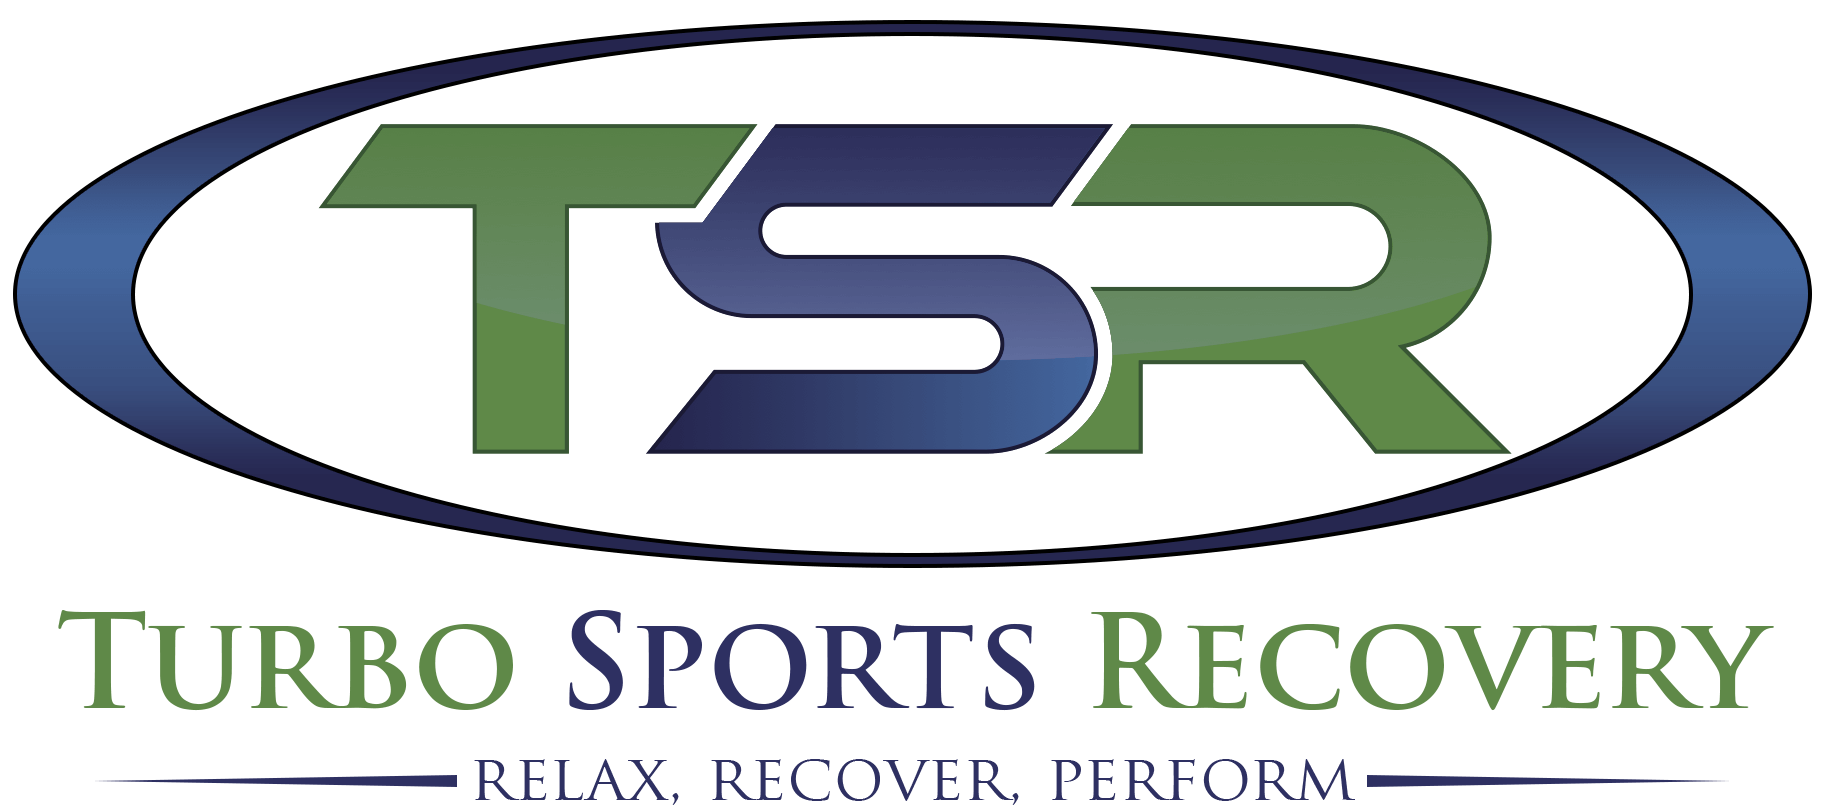 turbo sports recovery massage chairs logo